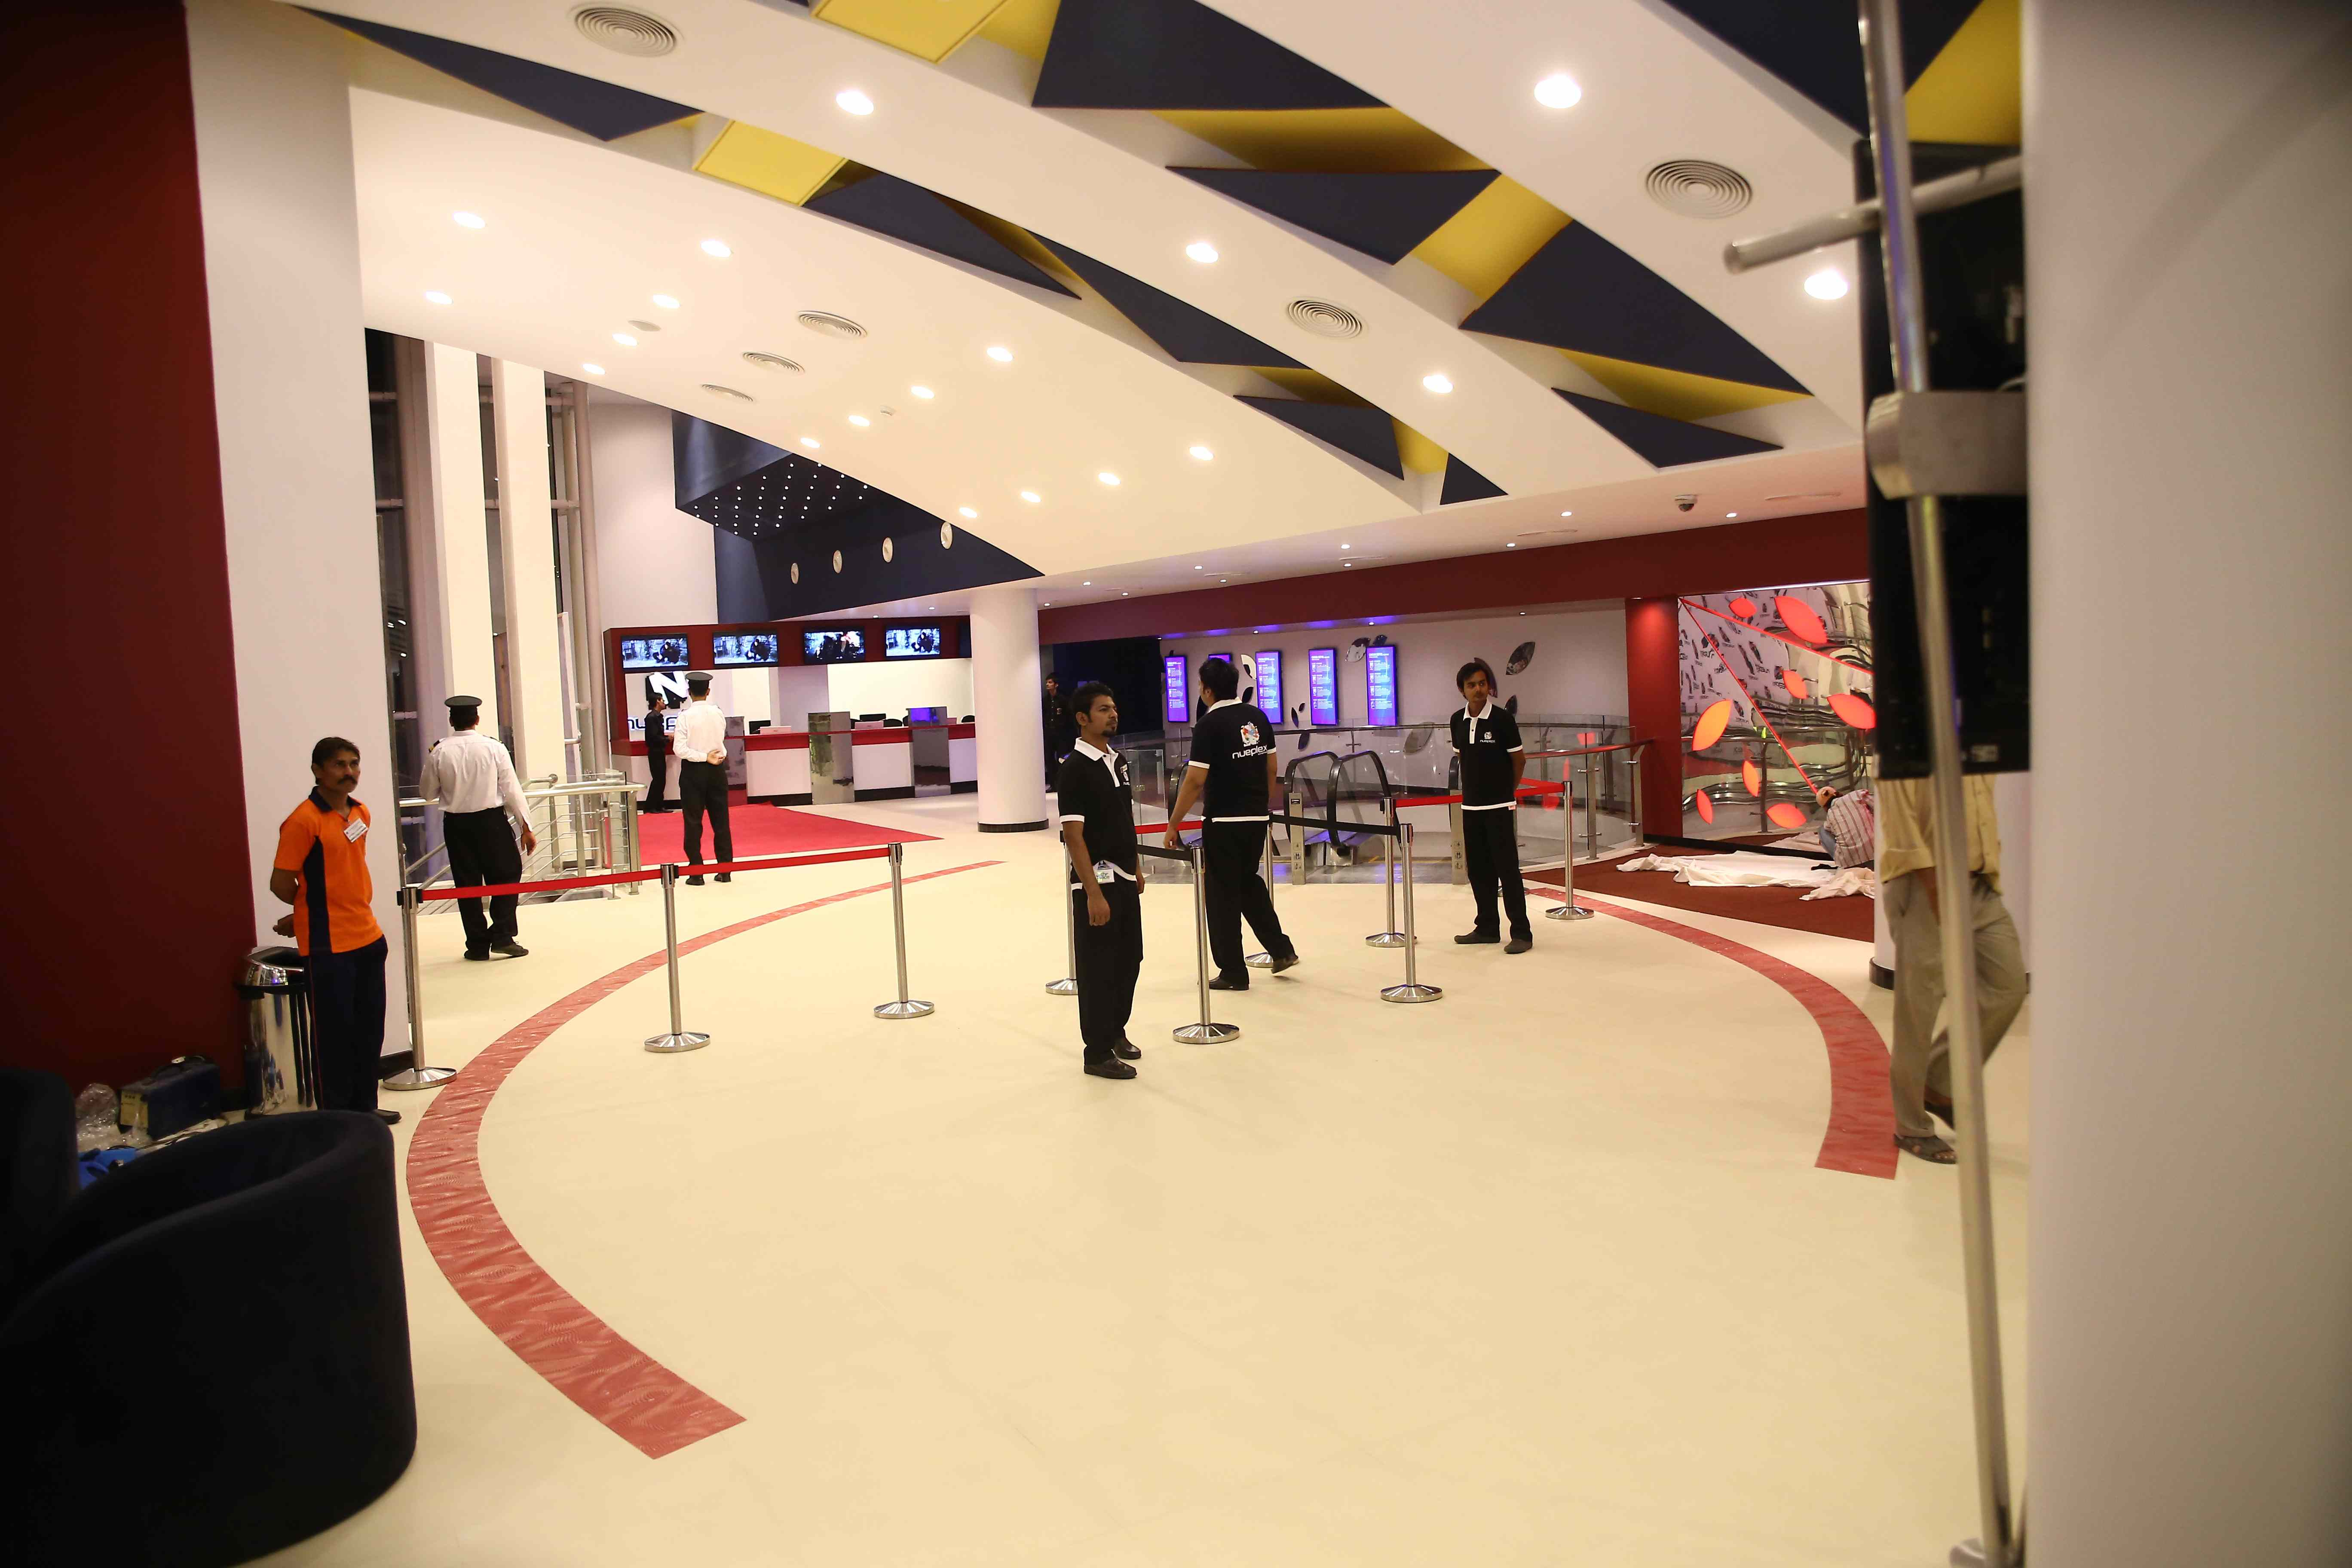 The Arrival of NUEPLEX Cinema in Karachi